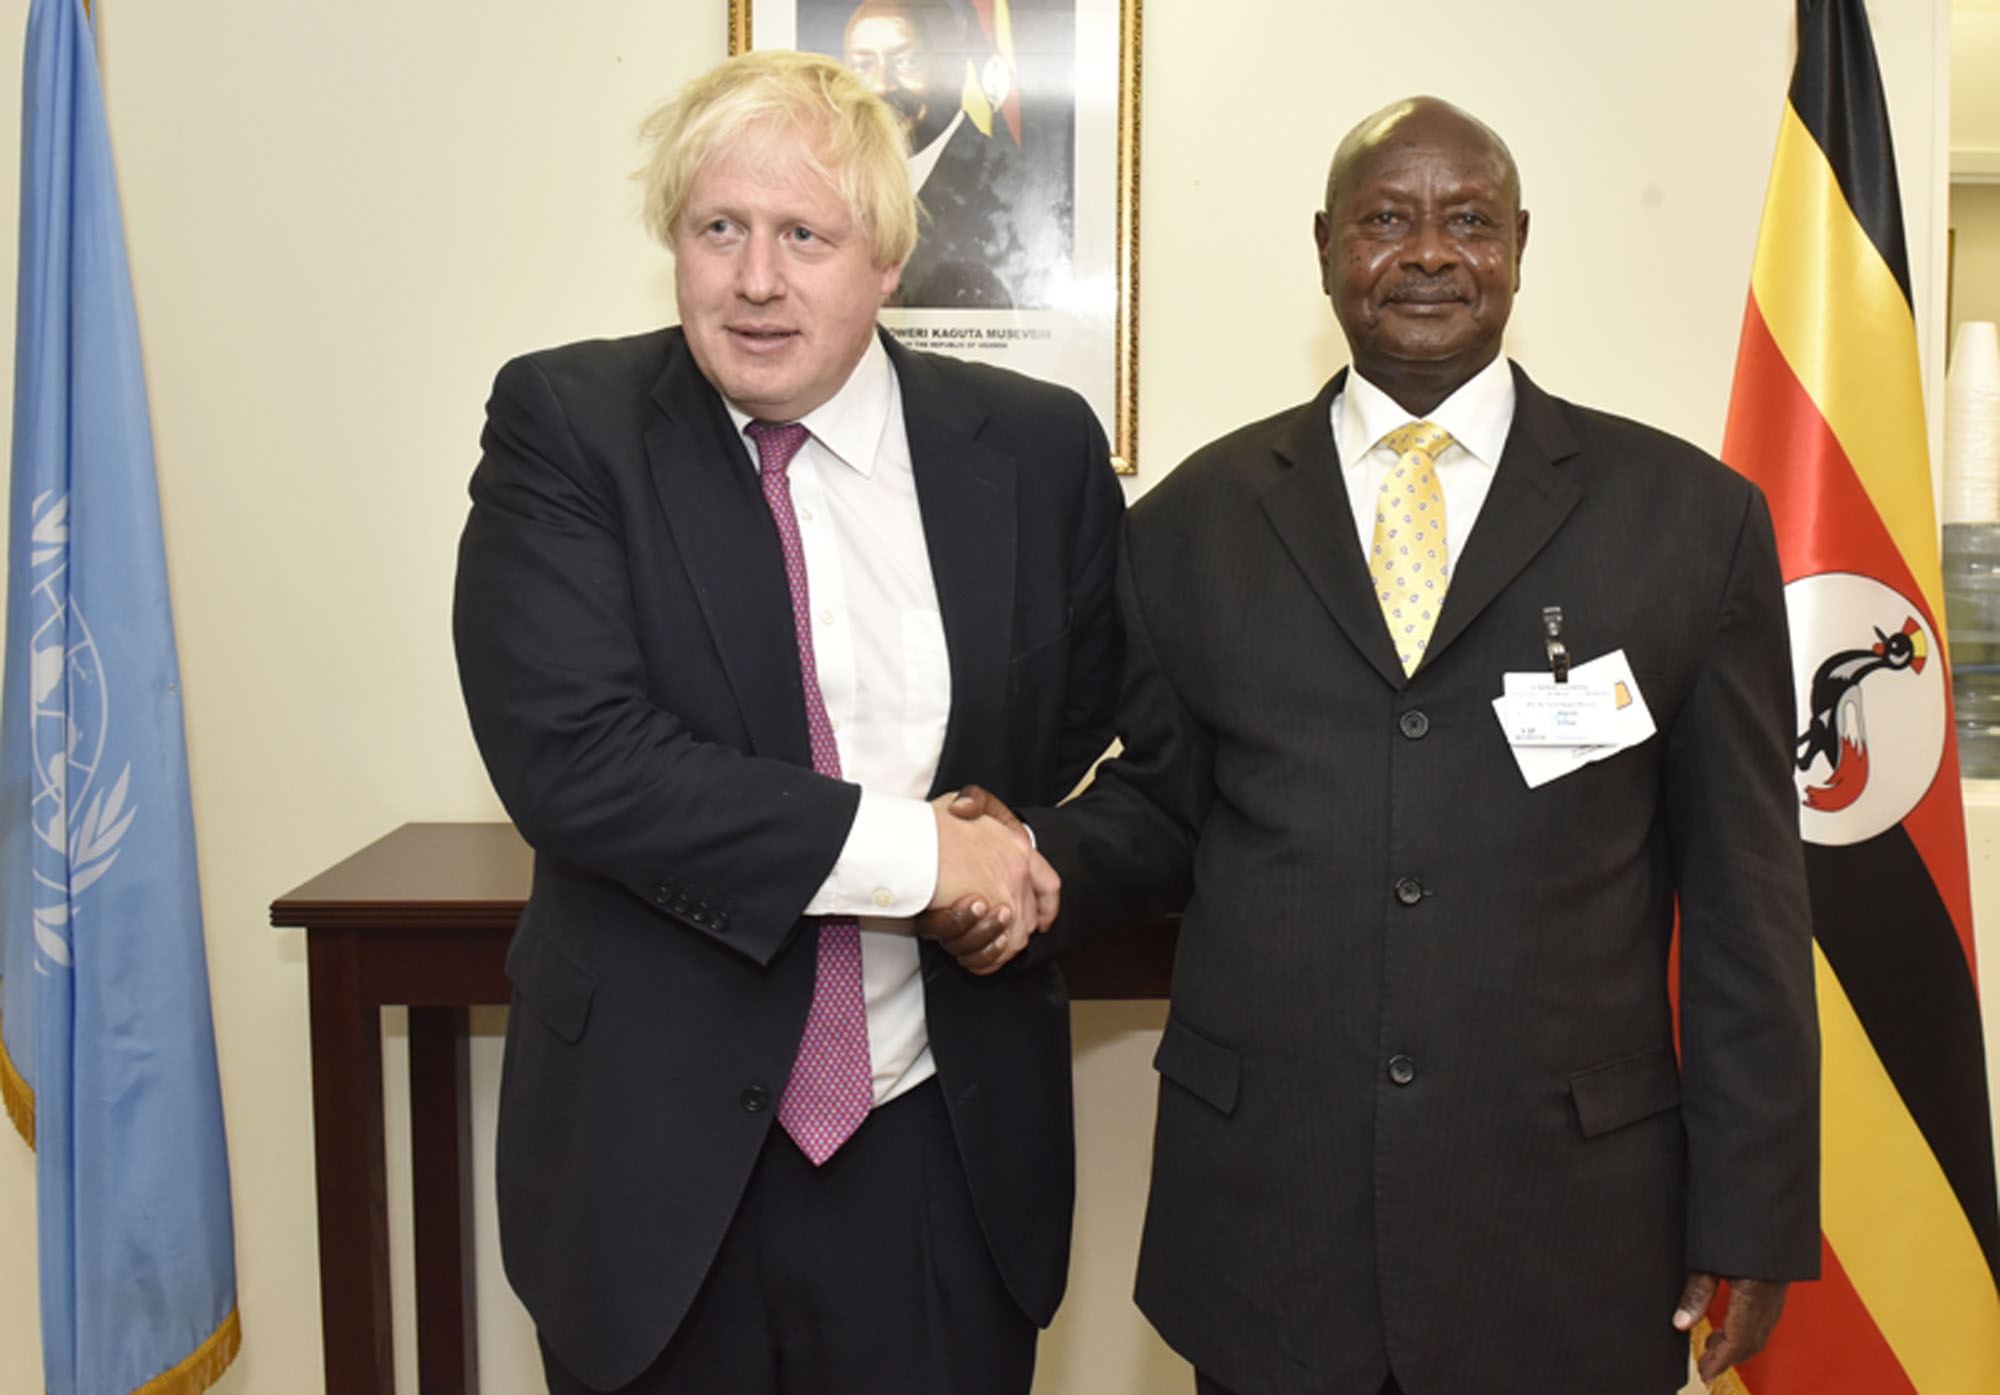 President Museveni poses for a photo with UK Foreign Secretary Boris Johnson during a meeting in New York City yesterday Monday Sept 18, 2017